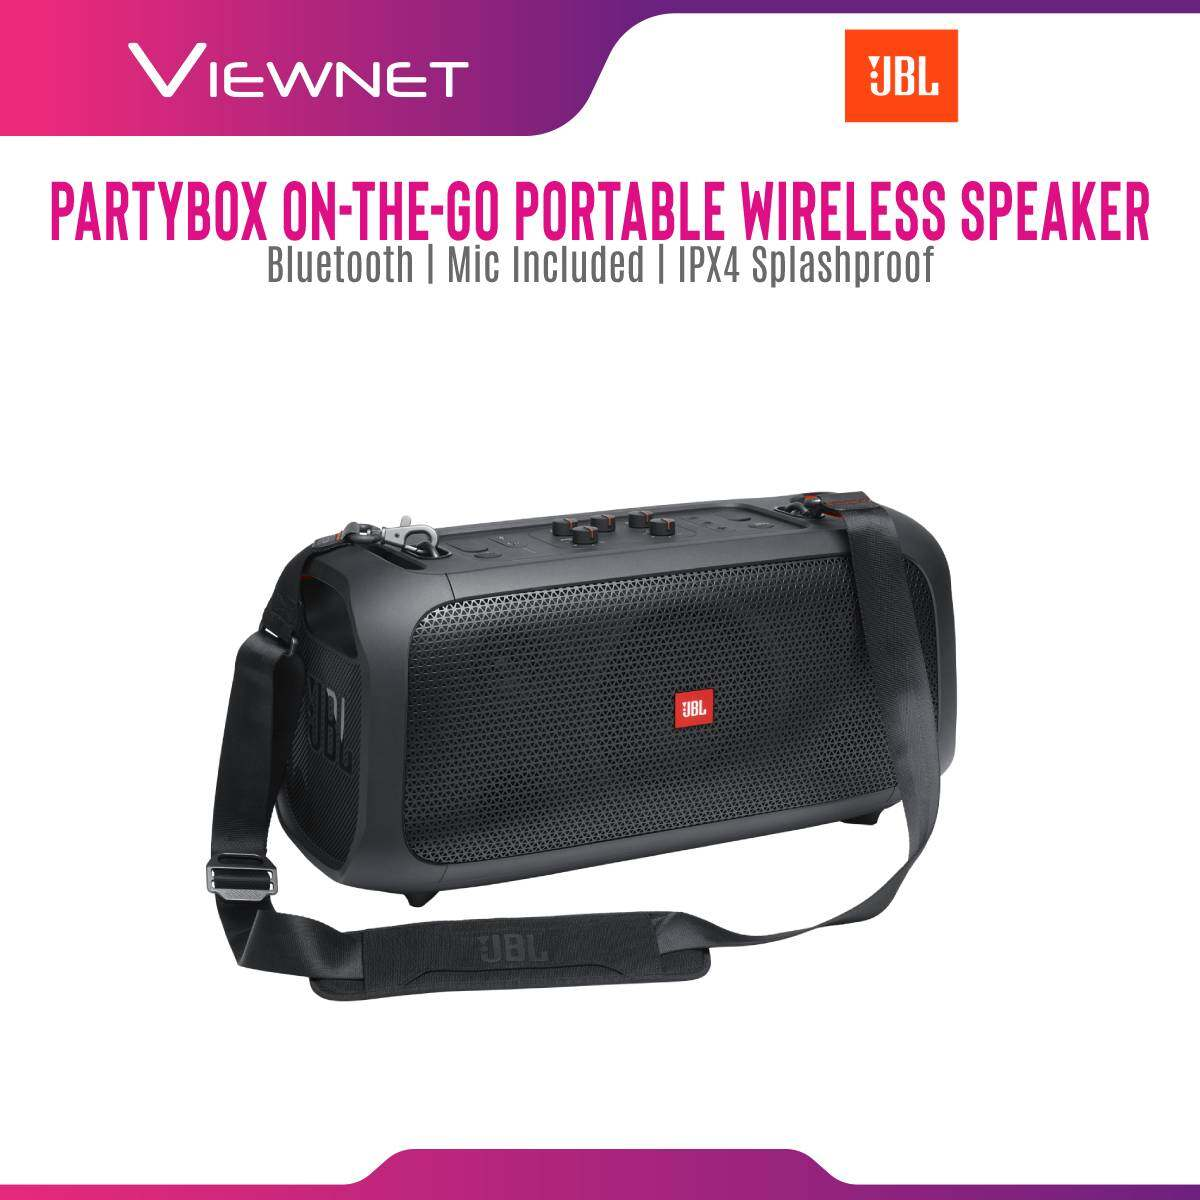 JBL Partybox On-The-Go Portable Wireless Speaker with built-in lights , IPX4 Splashproof ,  Wireless Microphone